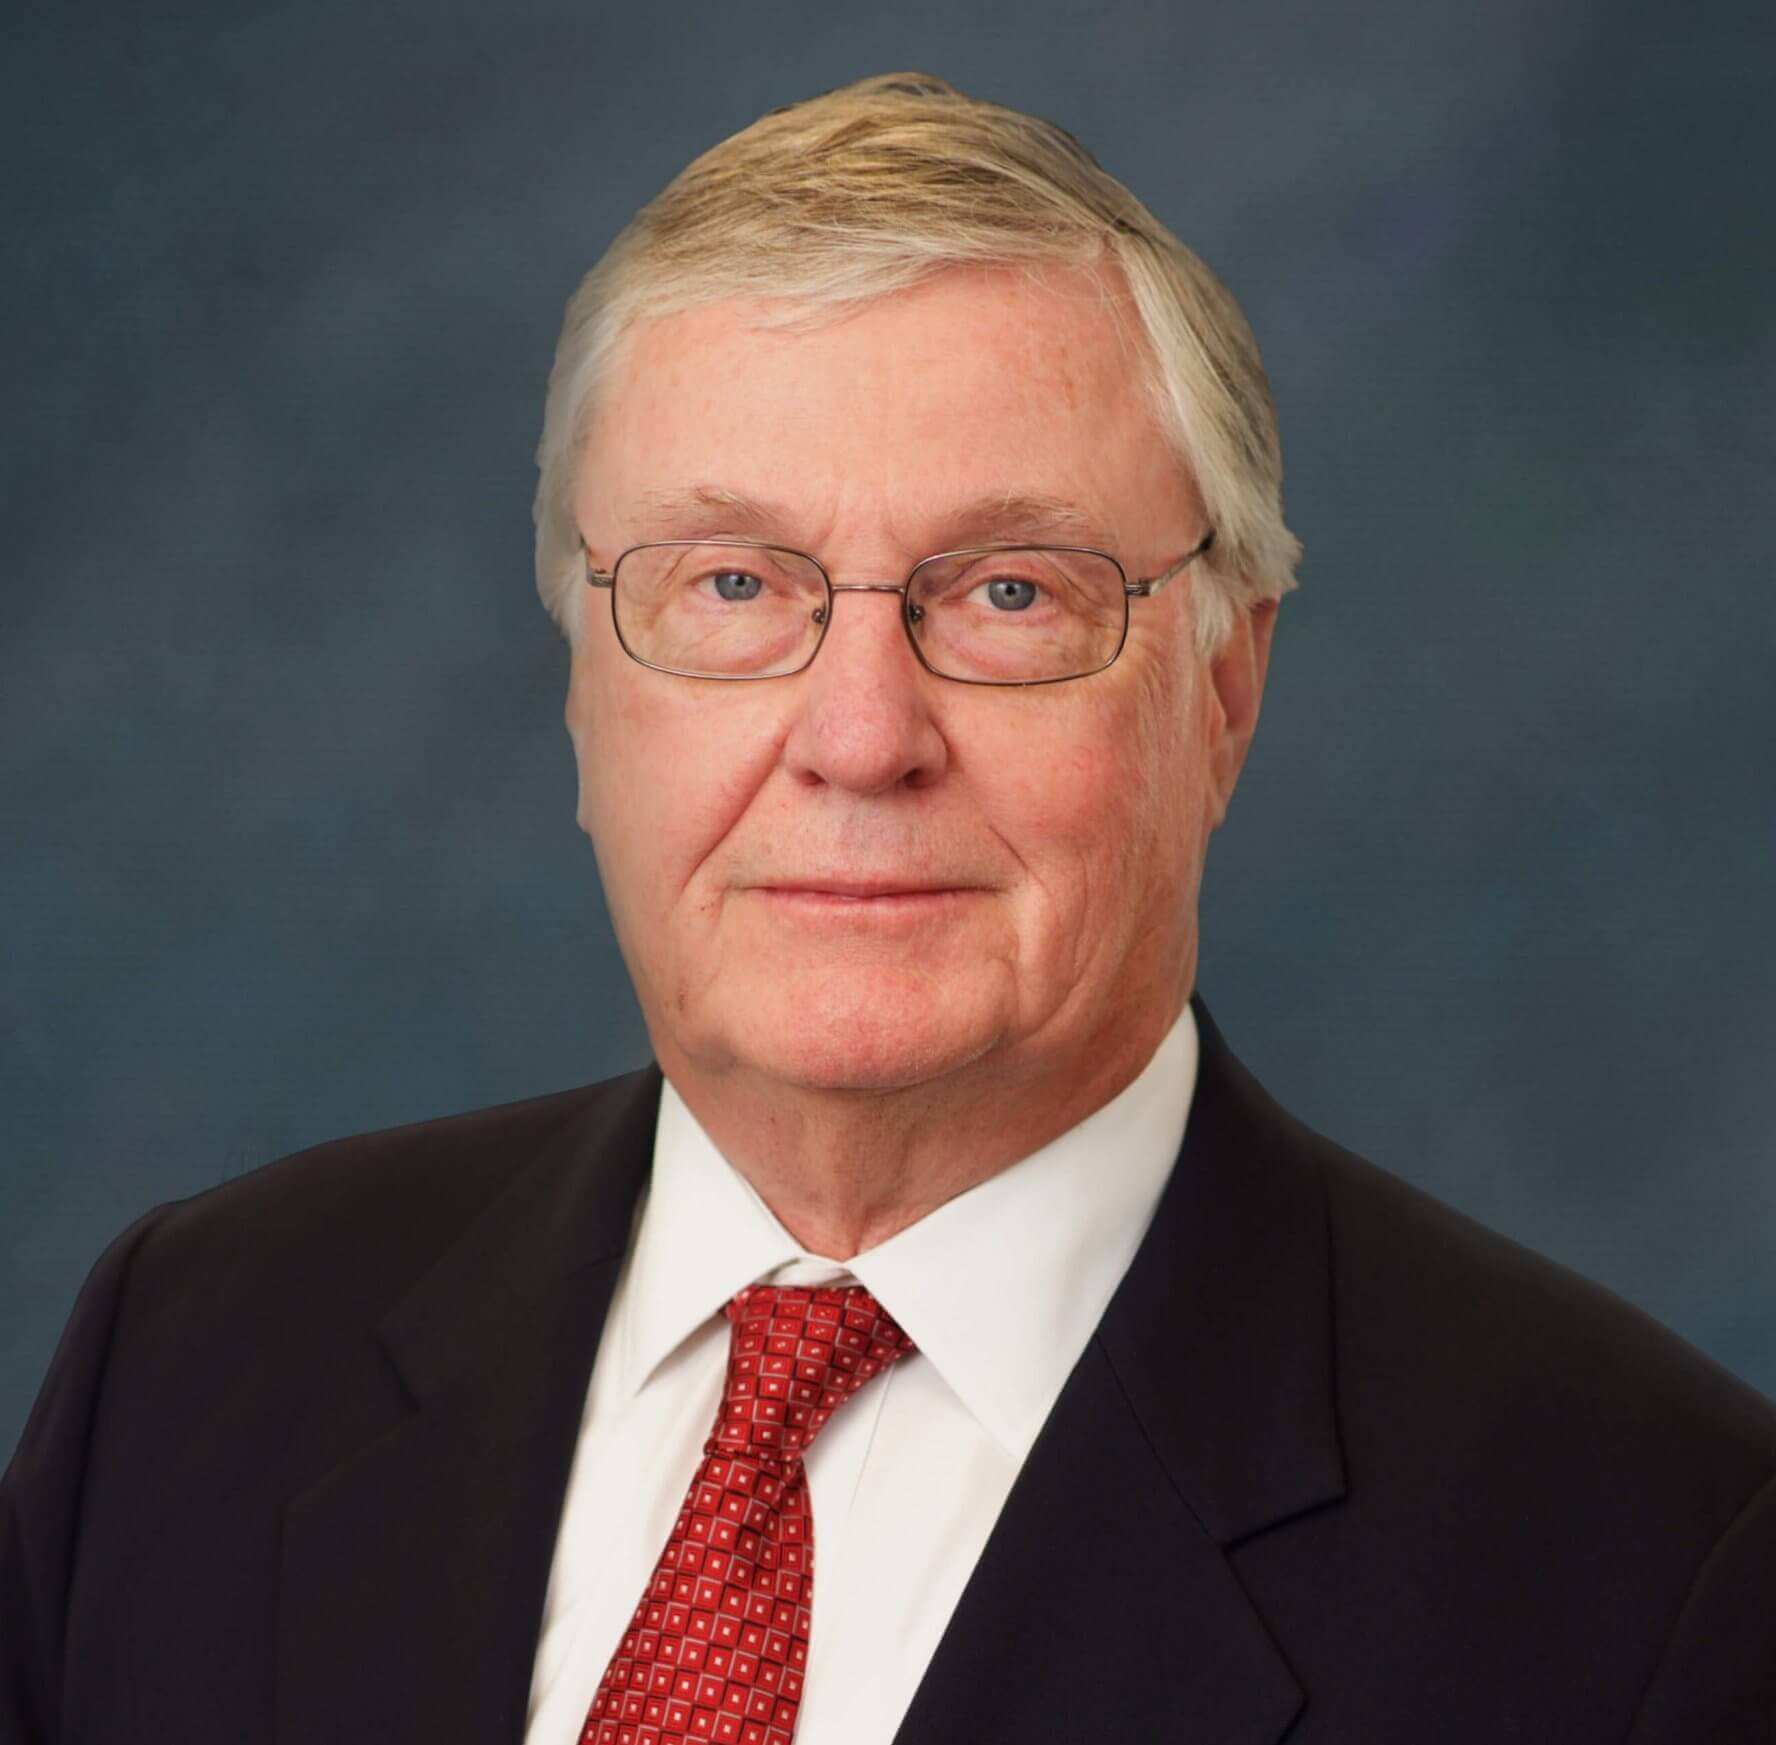 Denis F. Kelly, Hearing Officer for NAM (National Arbitration and Mediation)